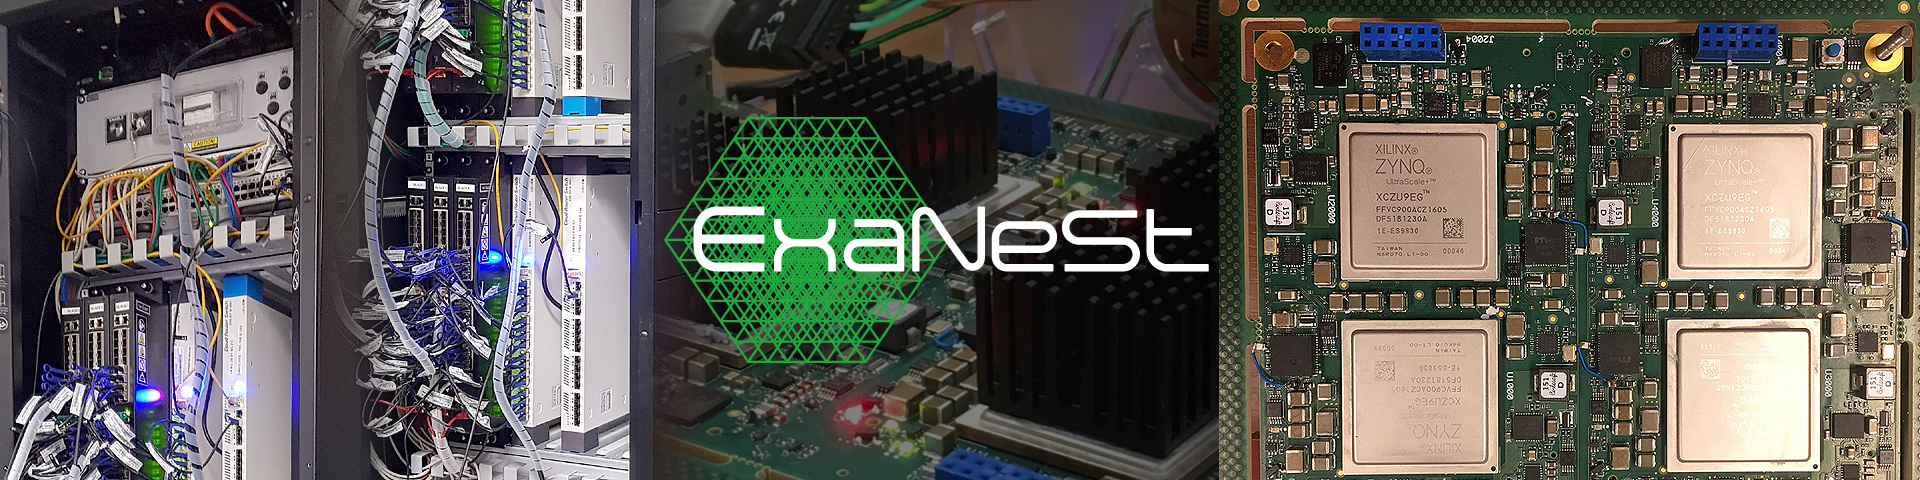 Image for exanest project